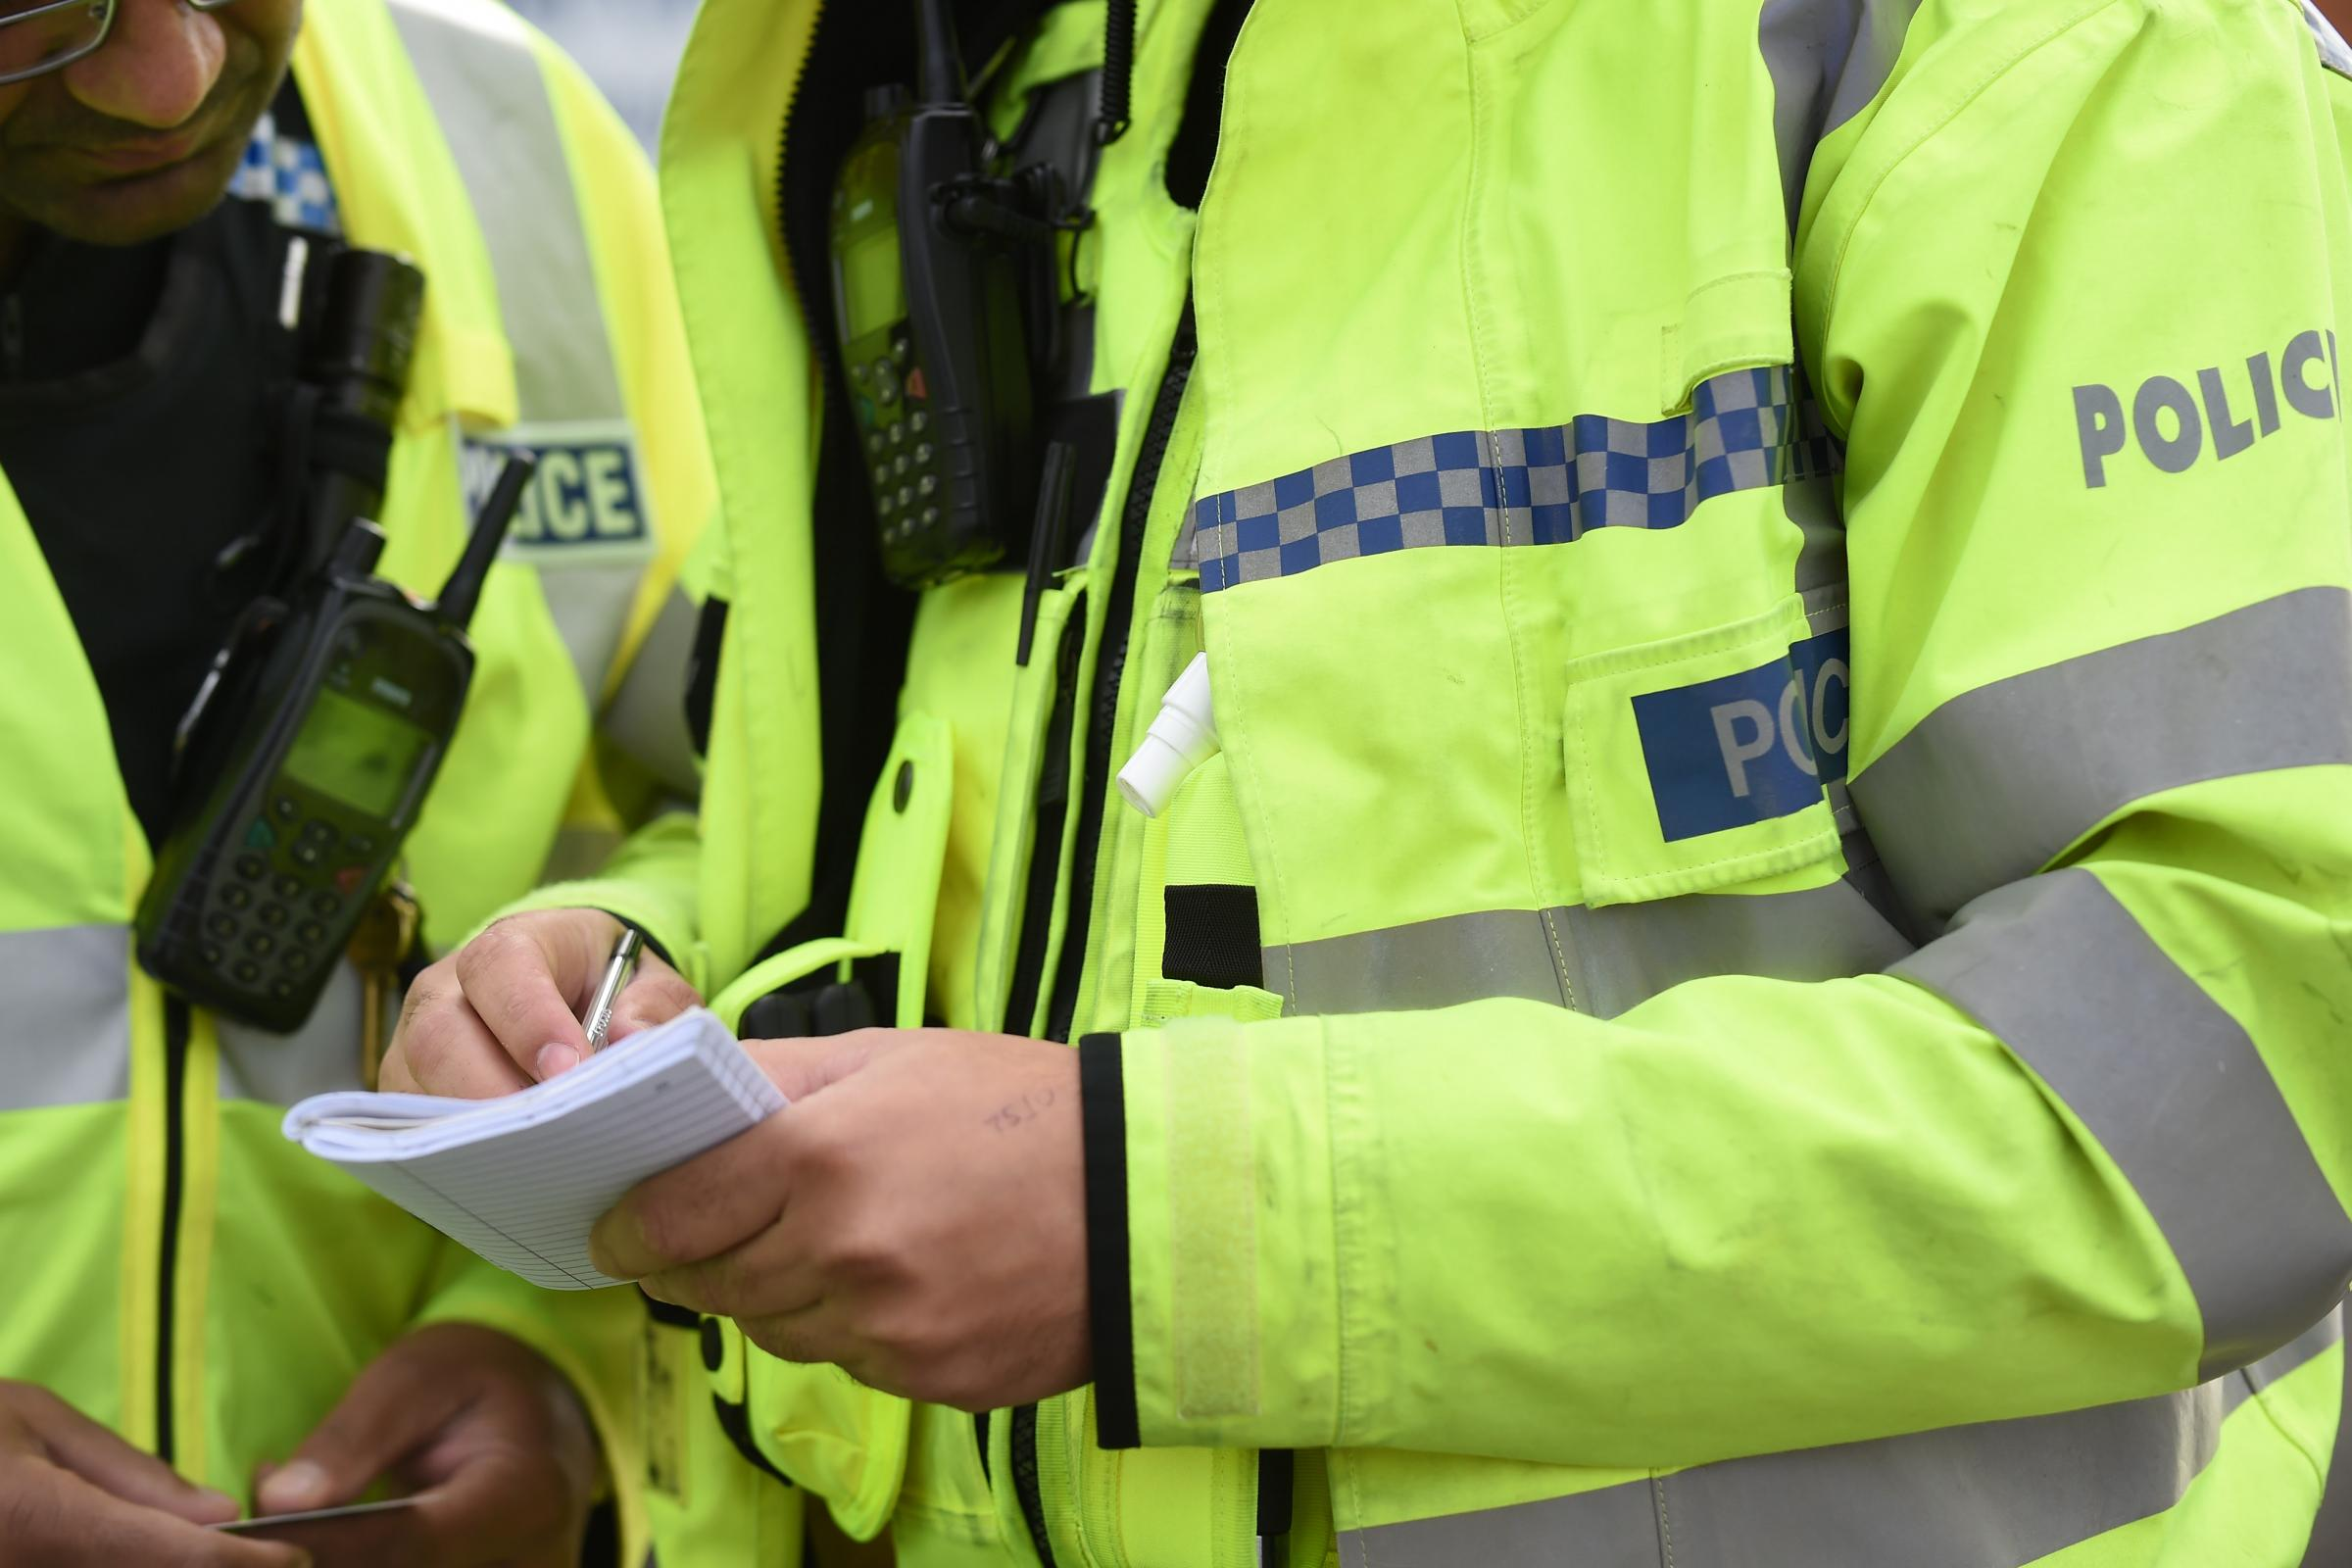 11-year-old boy injured in 'unprovoked attack by gang of youths'